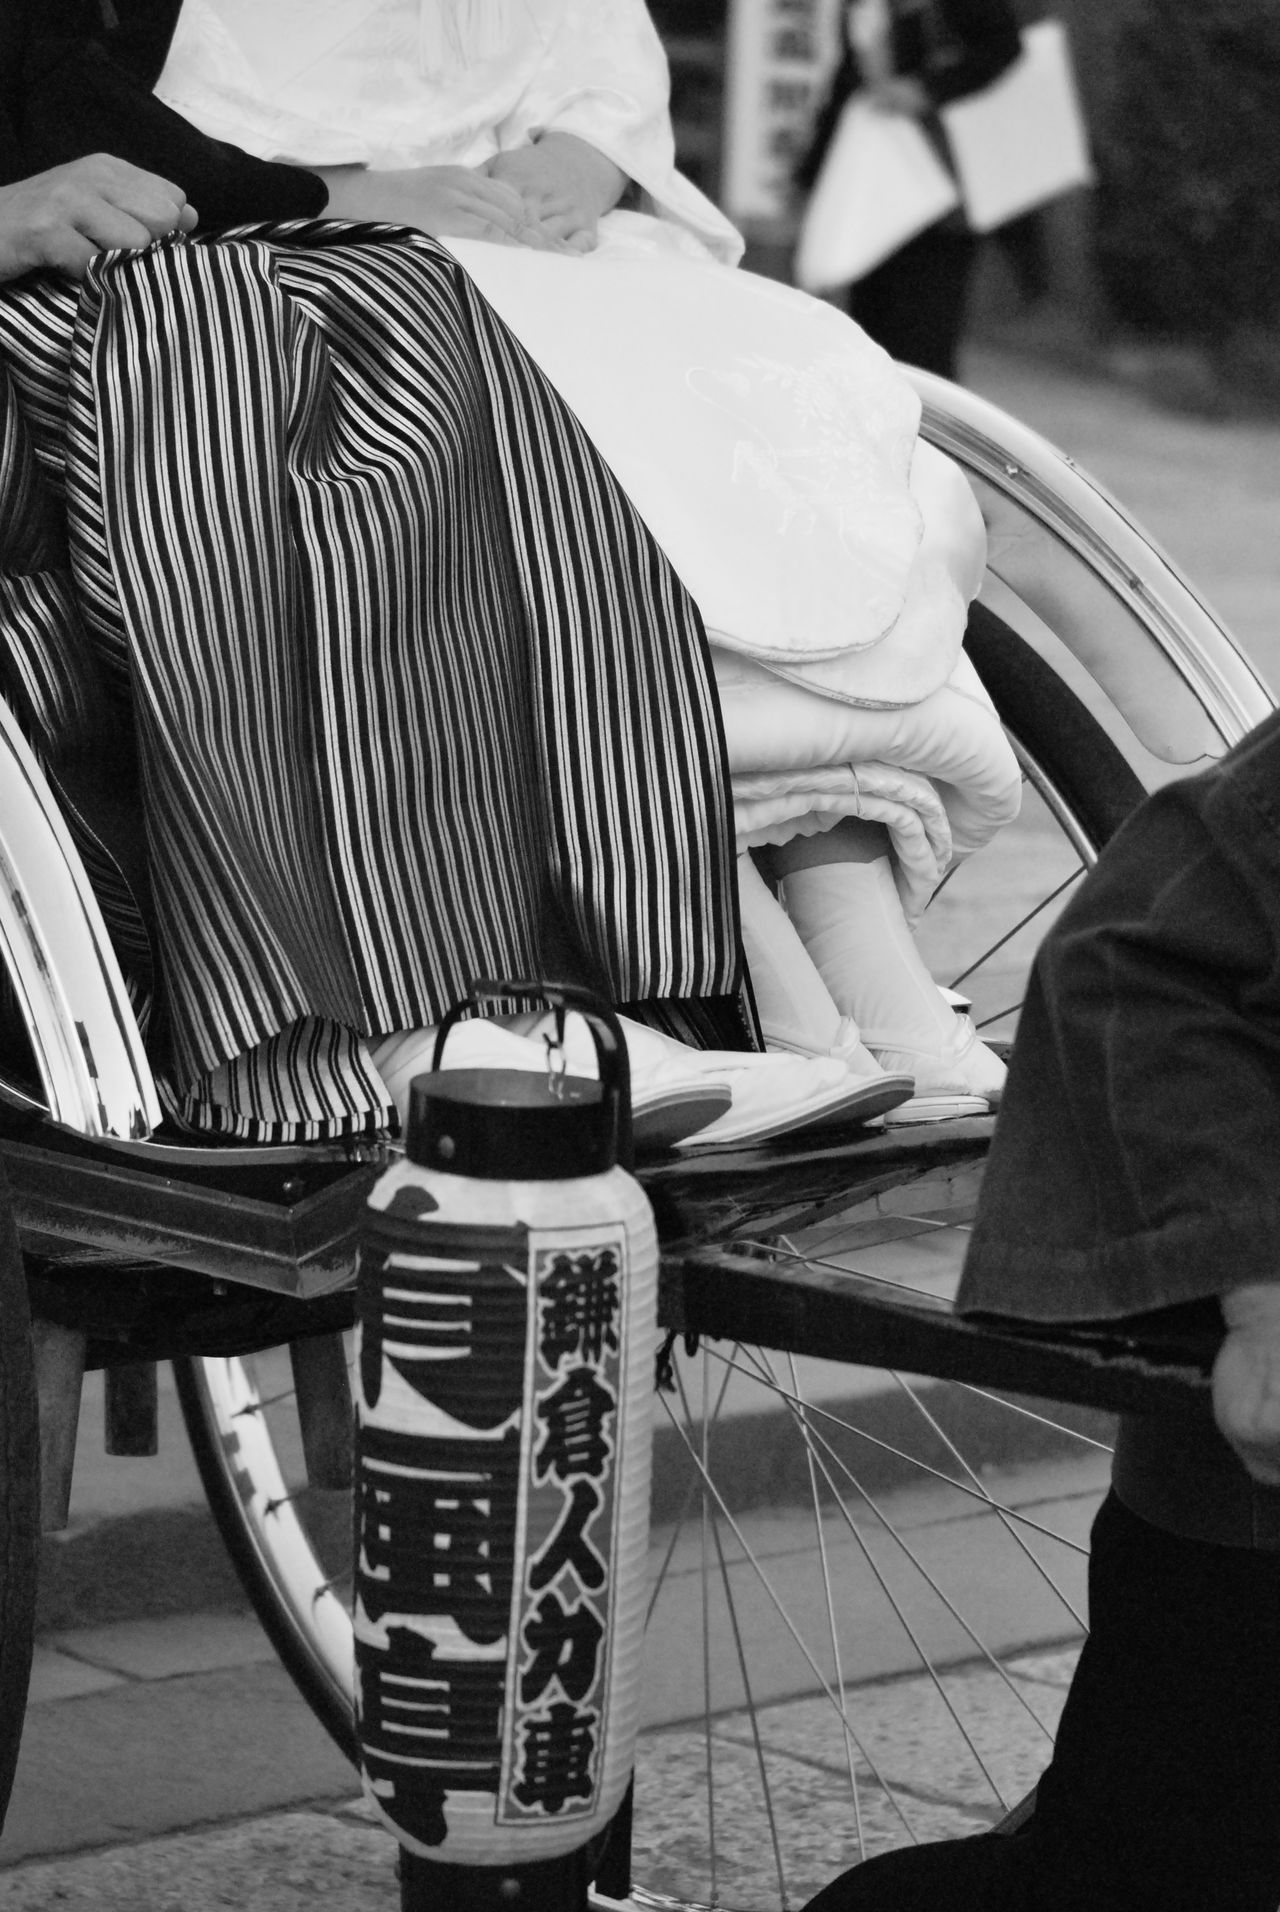 Black And White Eye4photography  EyeEm EyeEm Best Shots EyeEm Gallery Japan Japanese Style Japanese Wedding Lifestyles Monochrome Traditional Clothing Traditional Wedding Wedding Photography Weddings Around The World